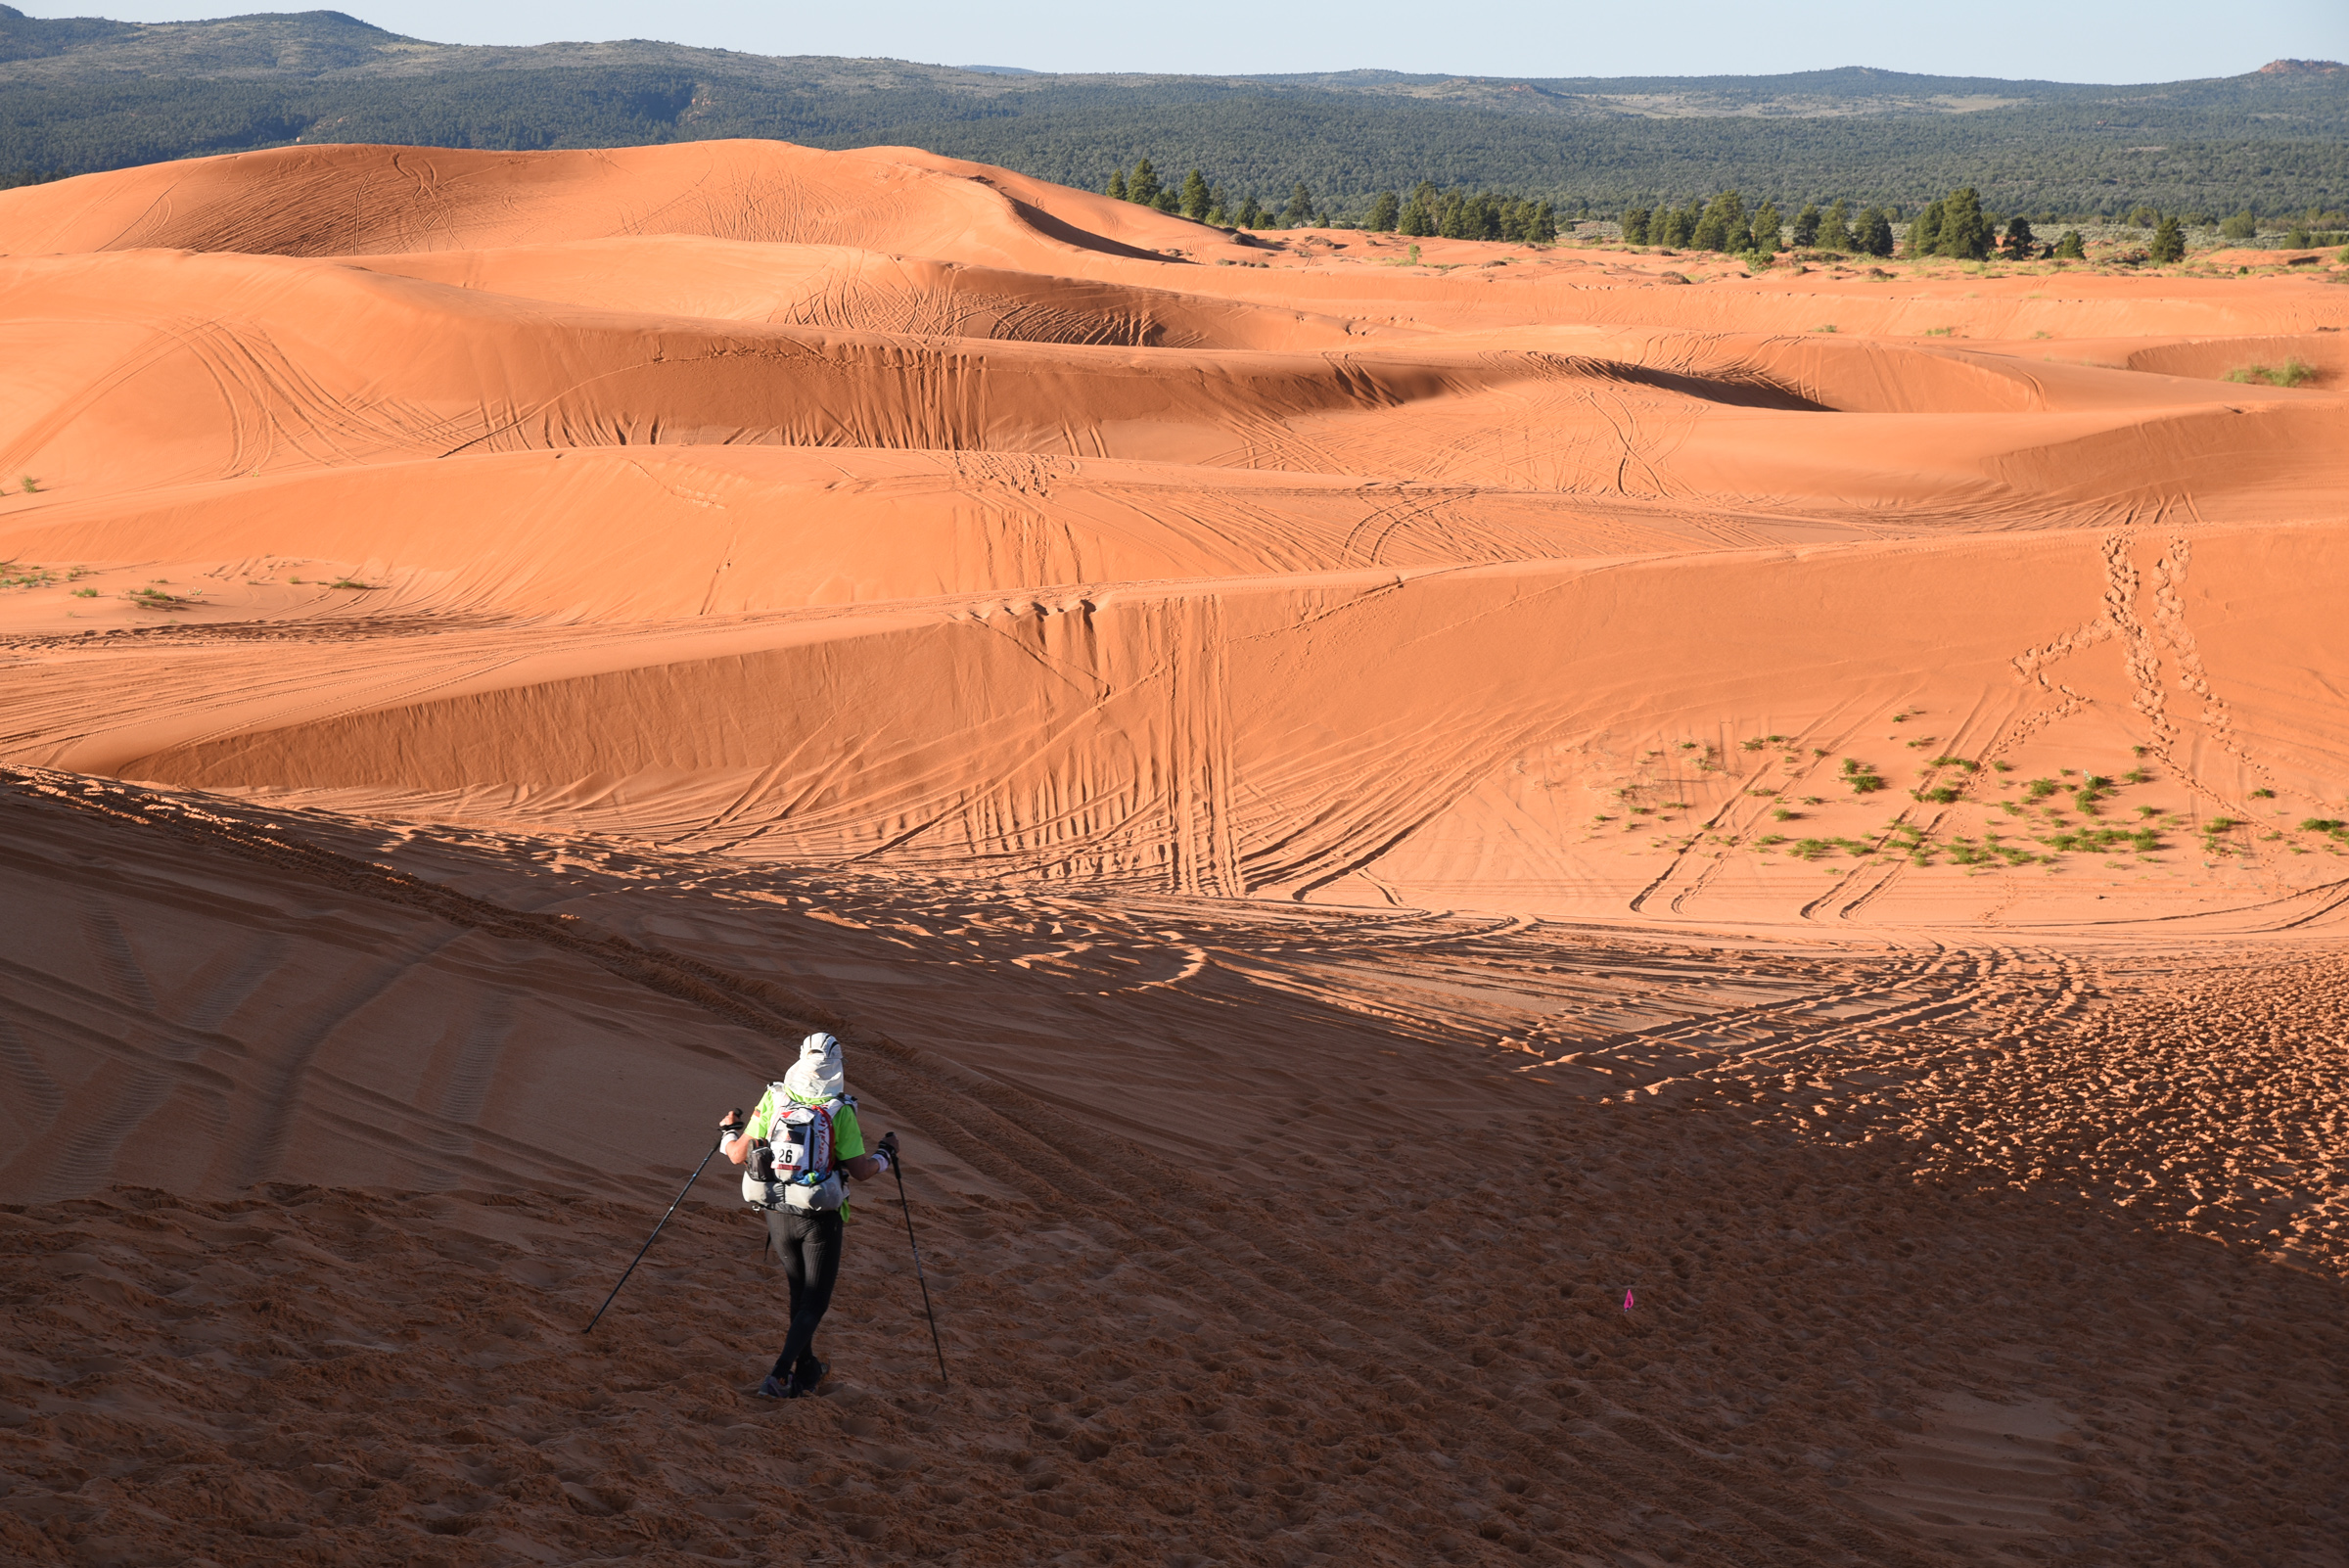 Another view of Stage 3's dunes.